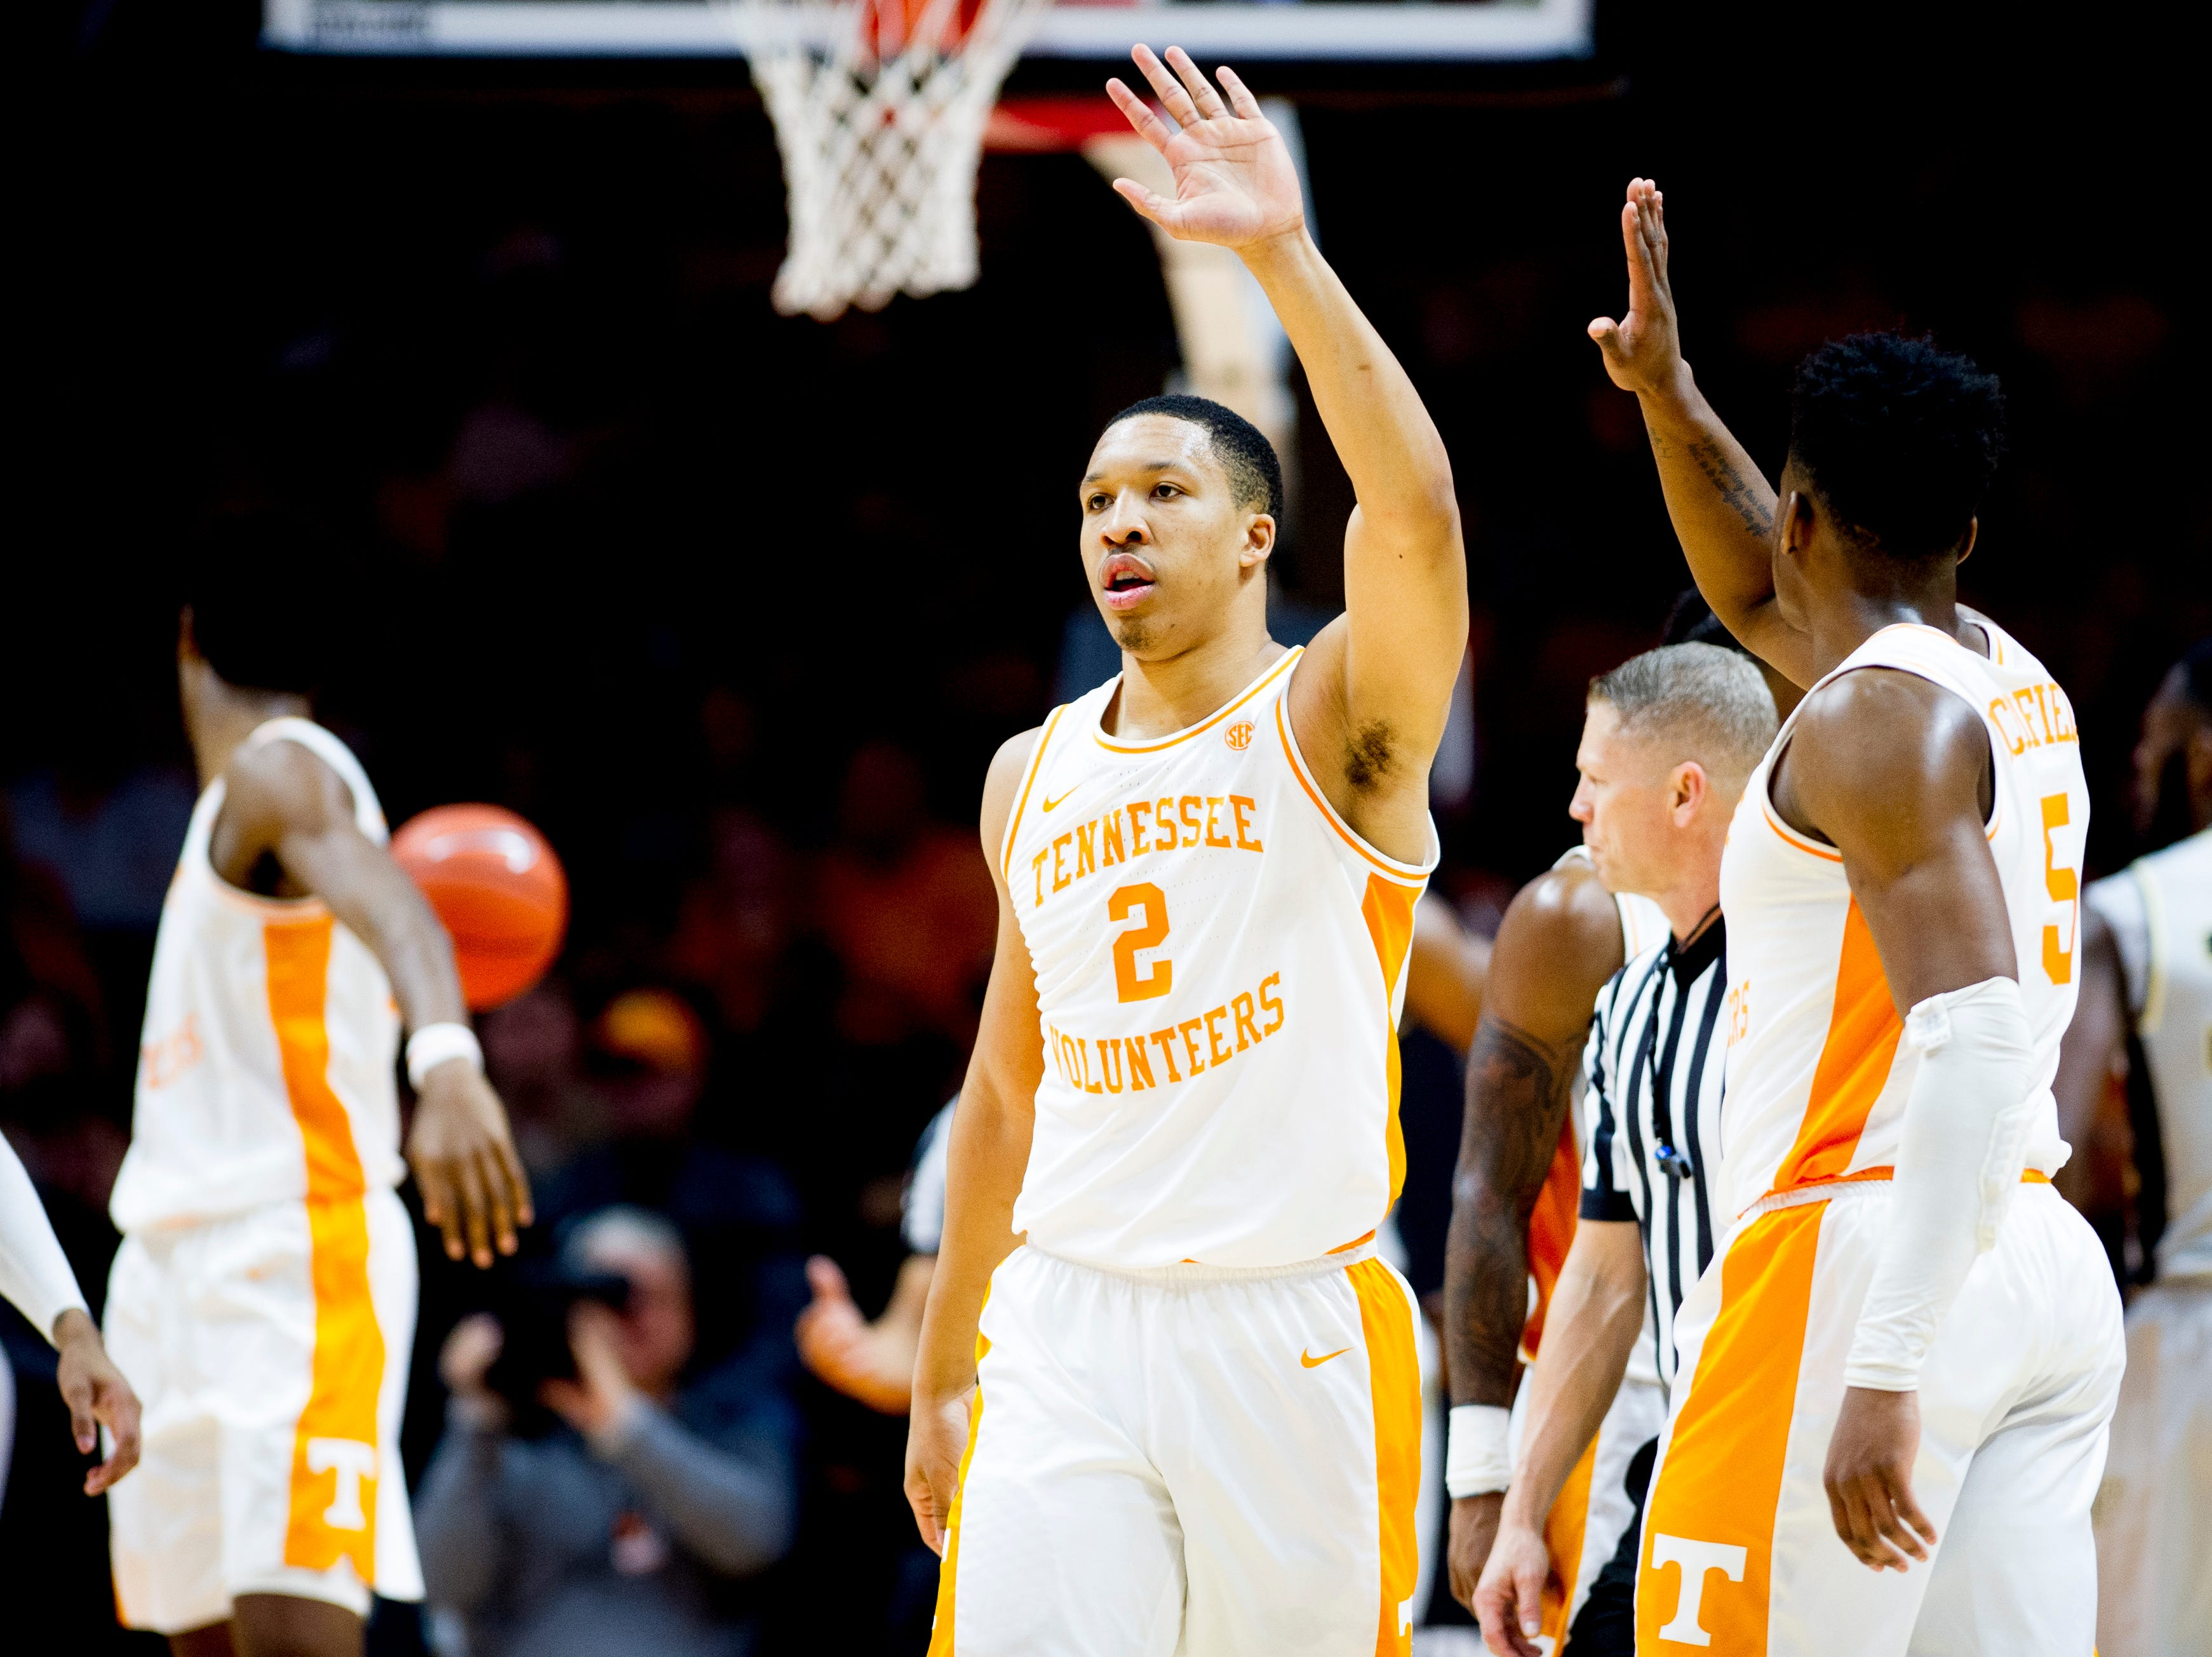 Tennessee forward Grant Williams (2) high-fives Tennessee guard Admiral Schofield (5) after making a point during a game between Tennessee and Wake Forest at Thompson-Boling Arena in Knoxville, Tennessee on Saturday, December 22, 2018.